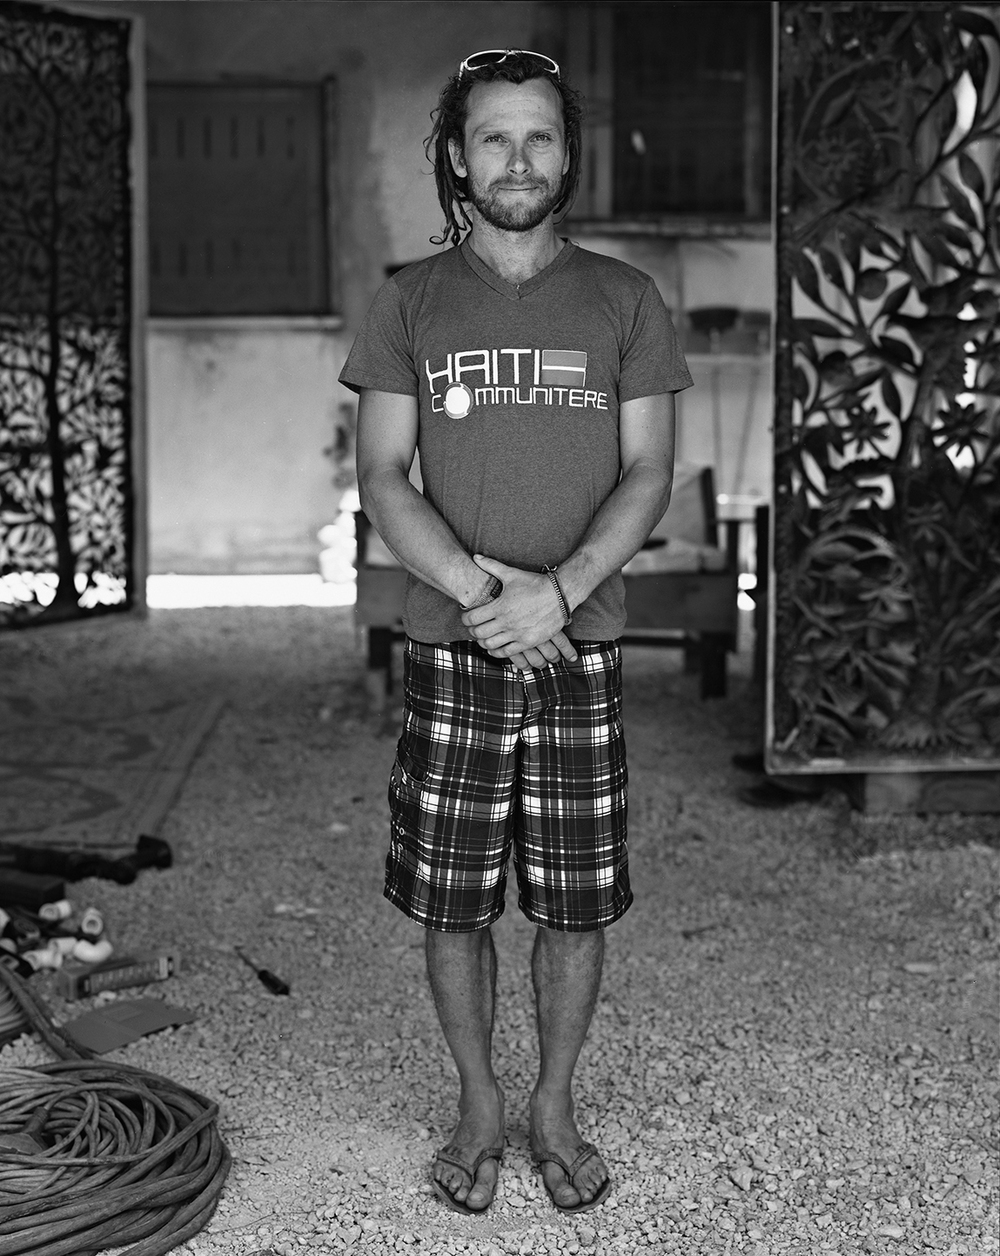 Sam Bloch At Haiti Communitaire, May 2012